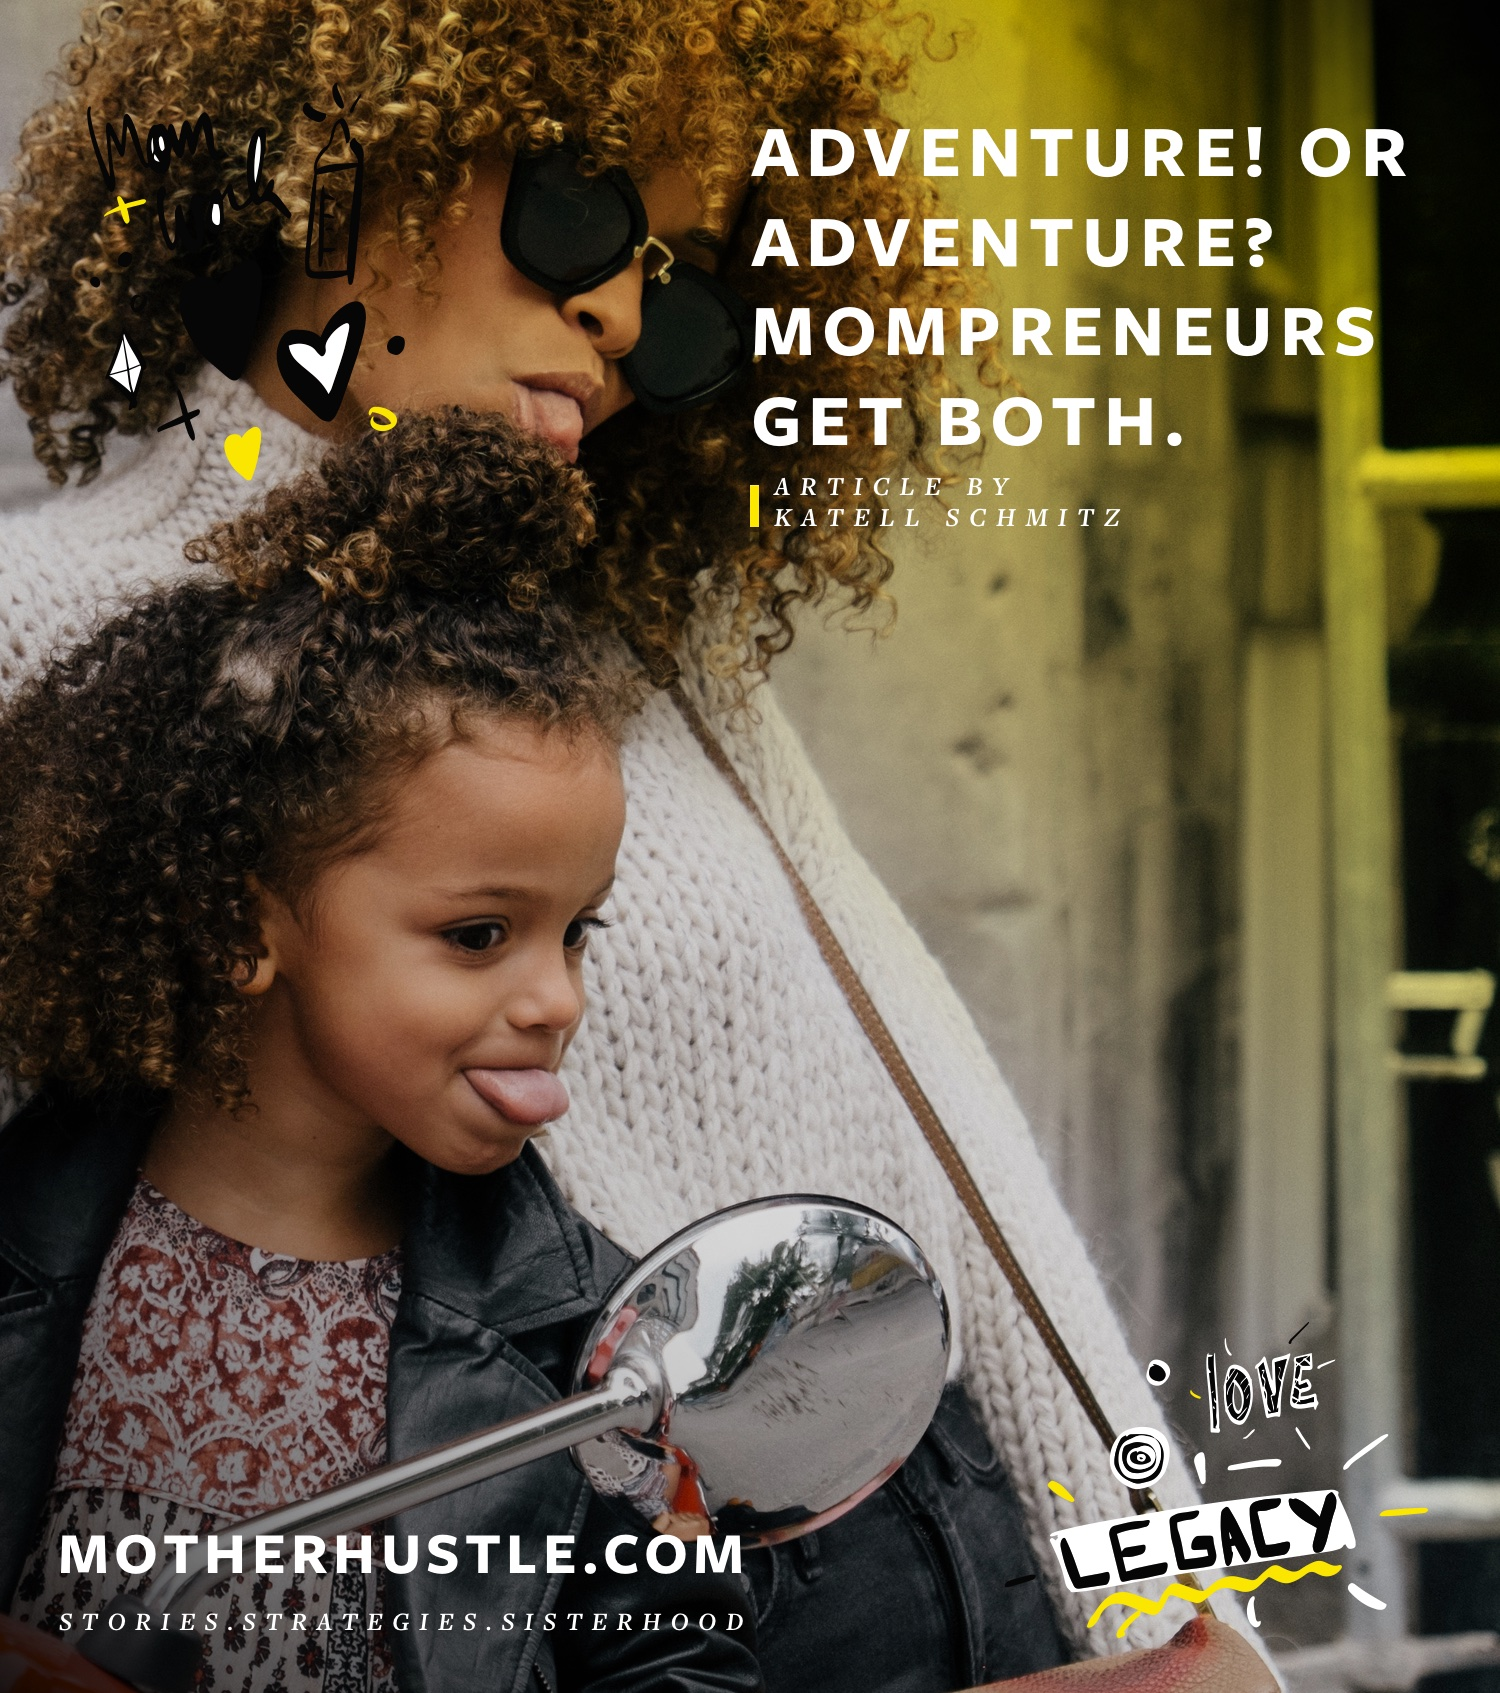 Adventure! or Adventure? Mompreneurs Get Both. by Katell Schmitz for MotherHustle